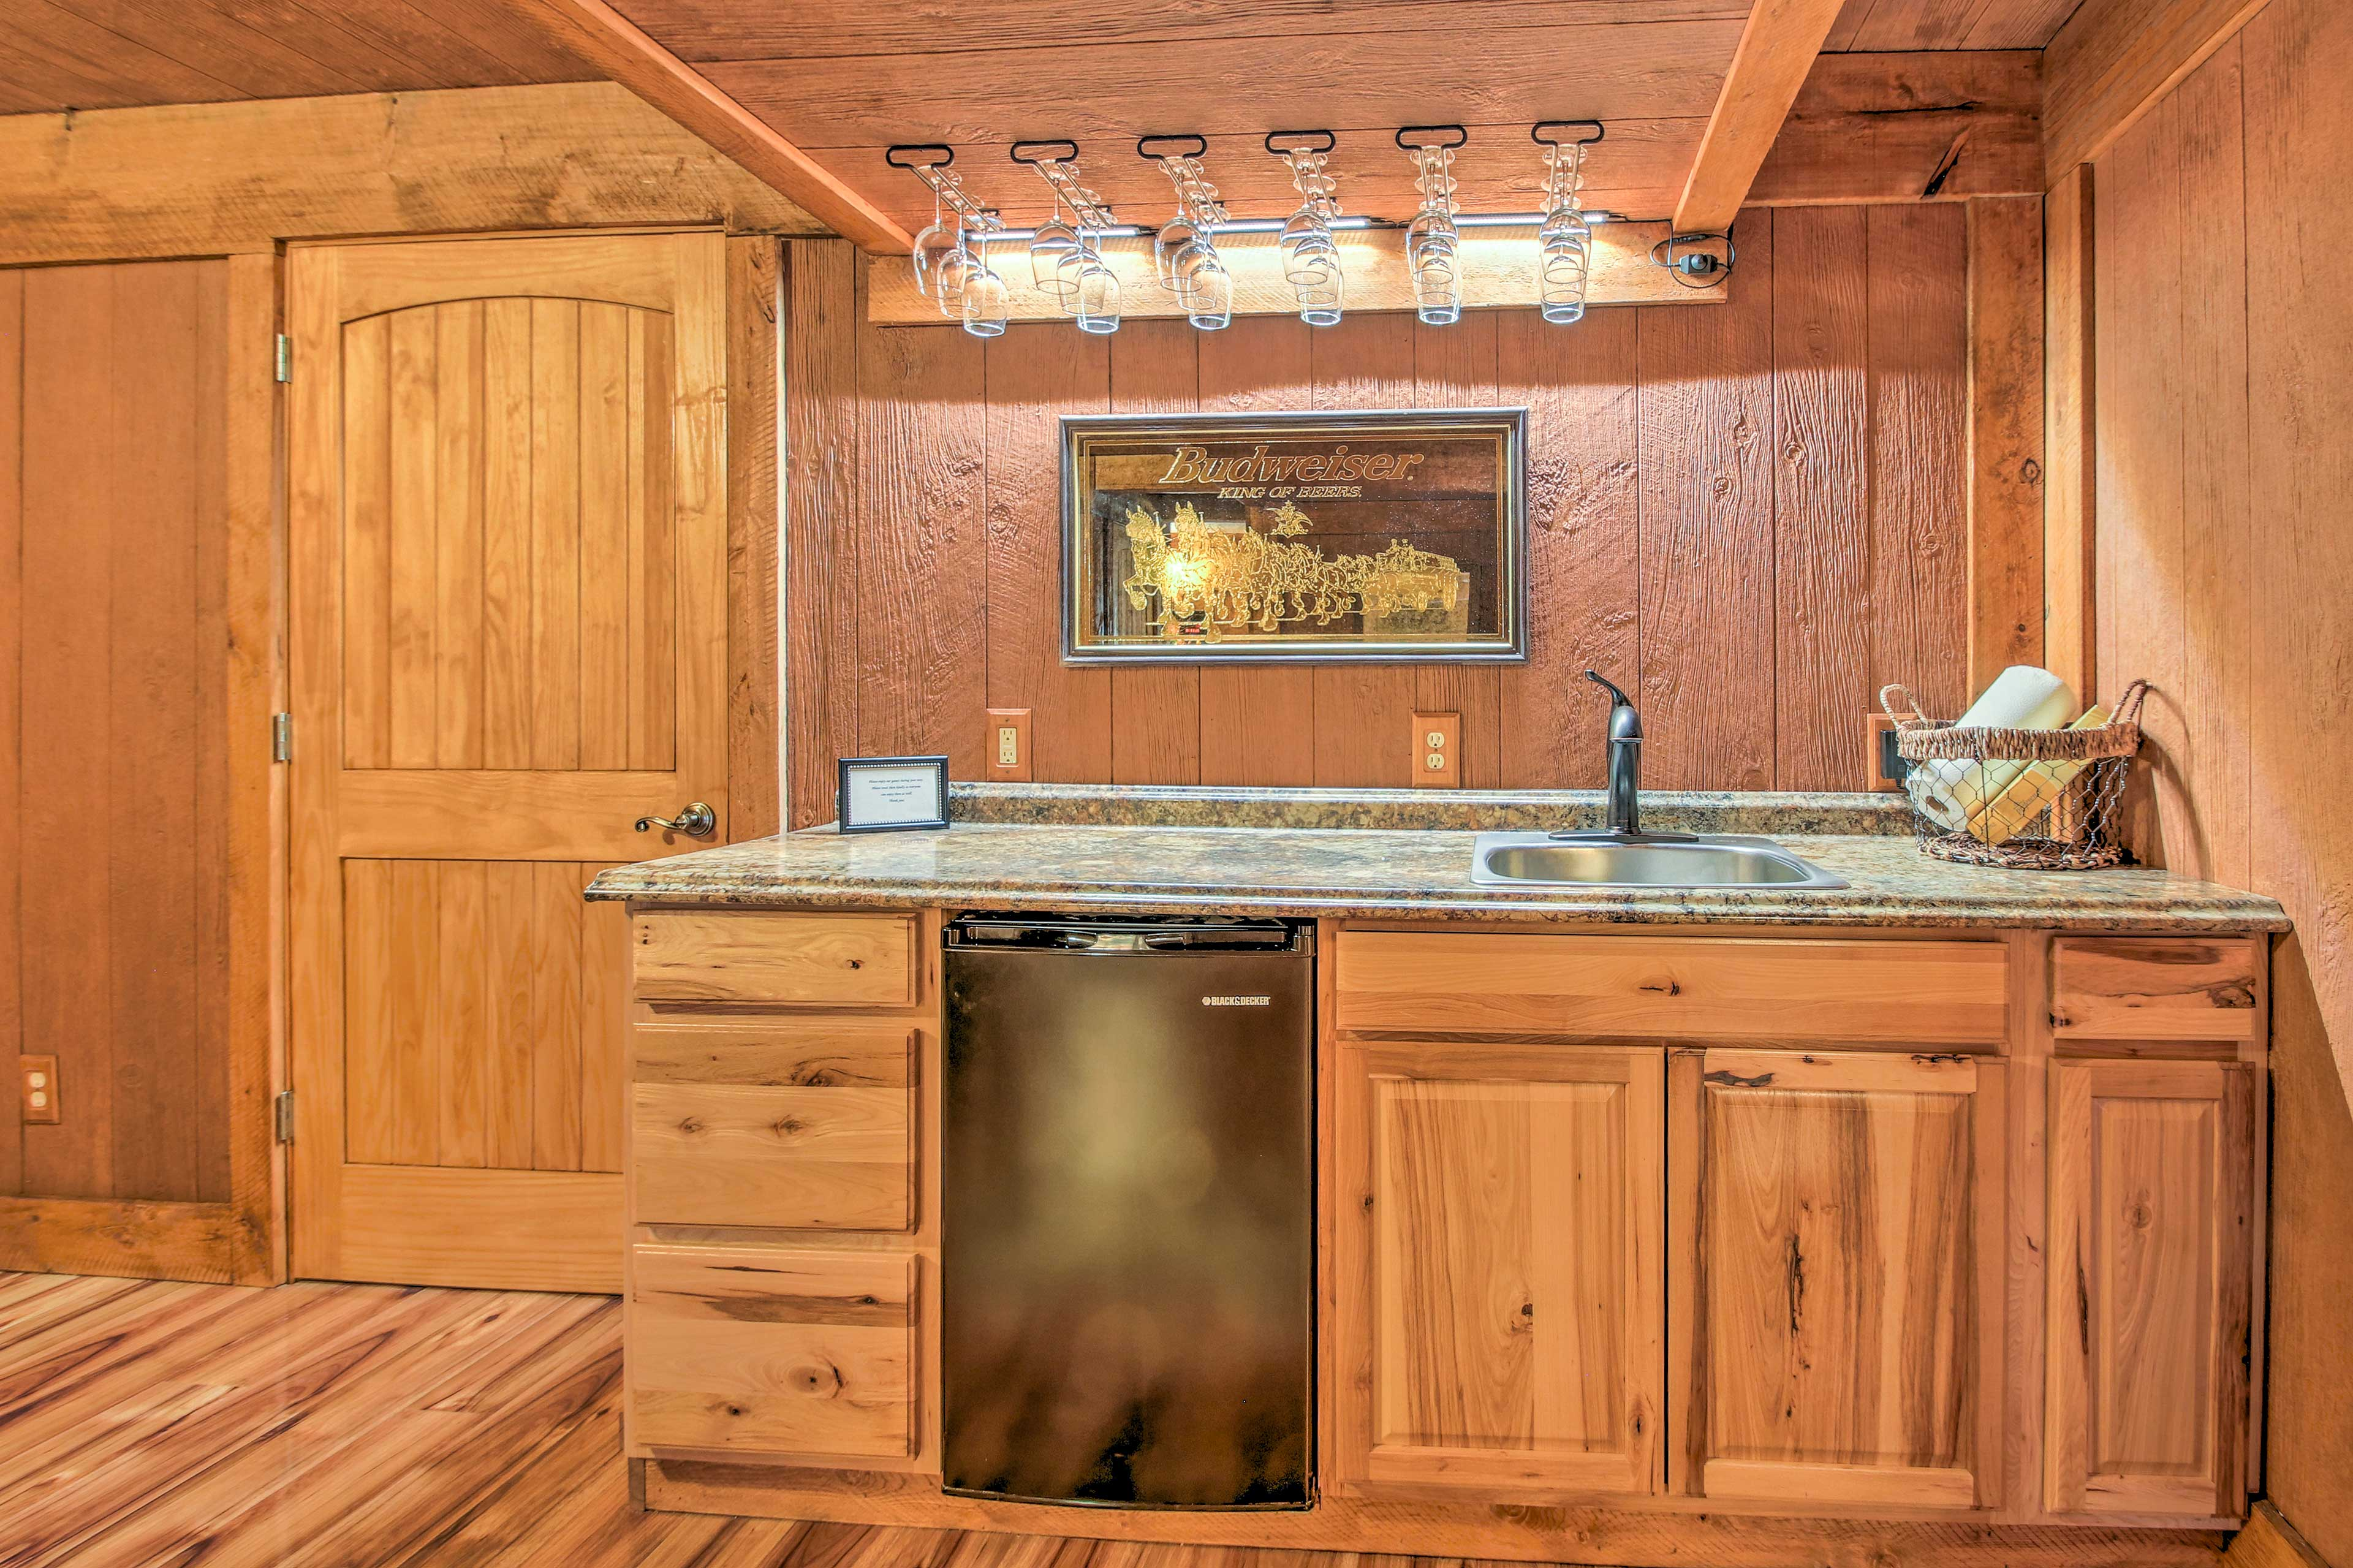 No need to go upstairs for a drink with the wet bar in the basement.